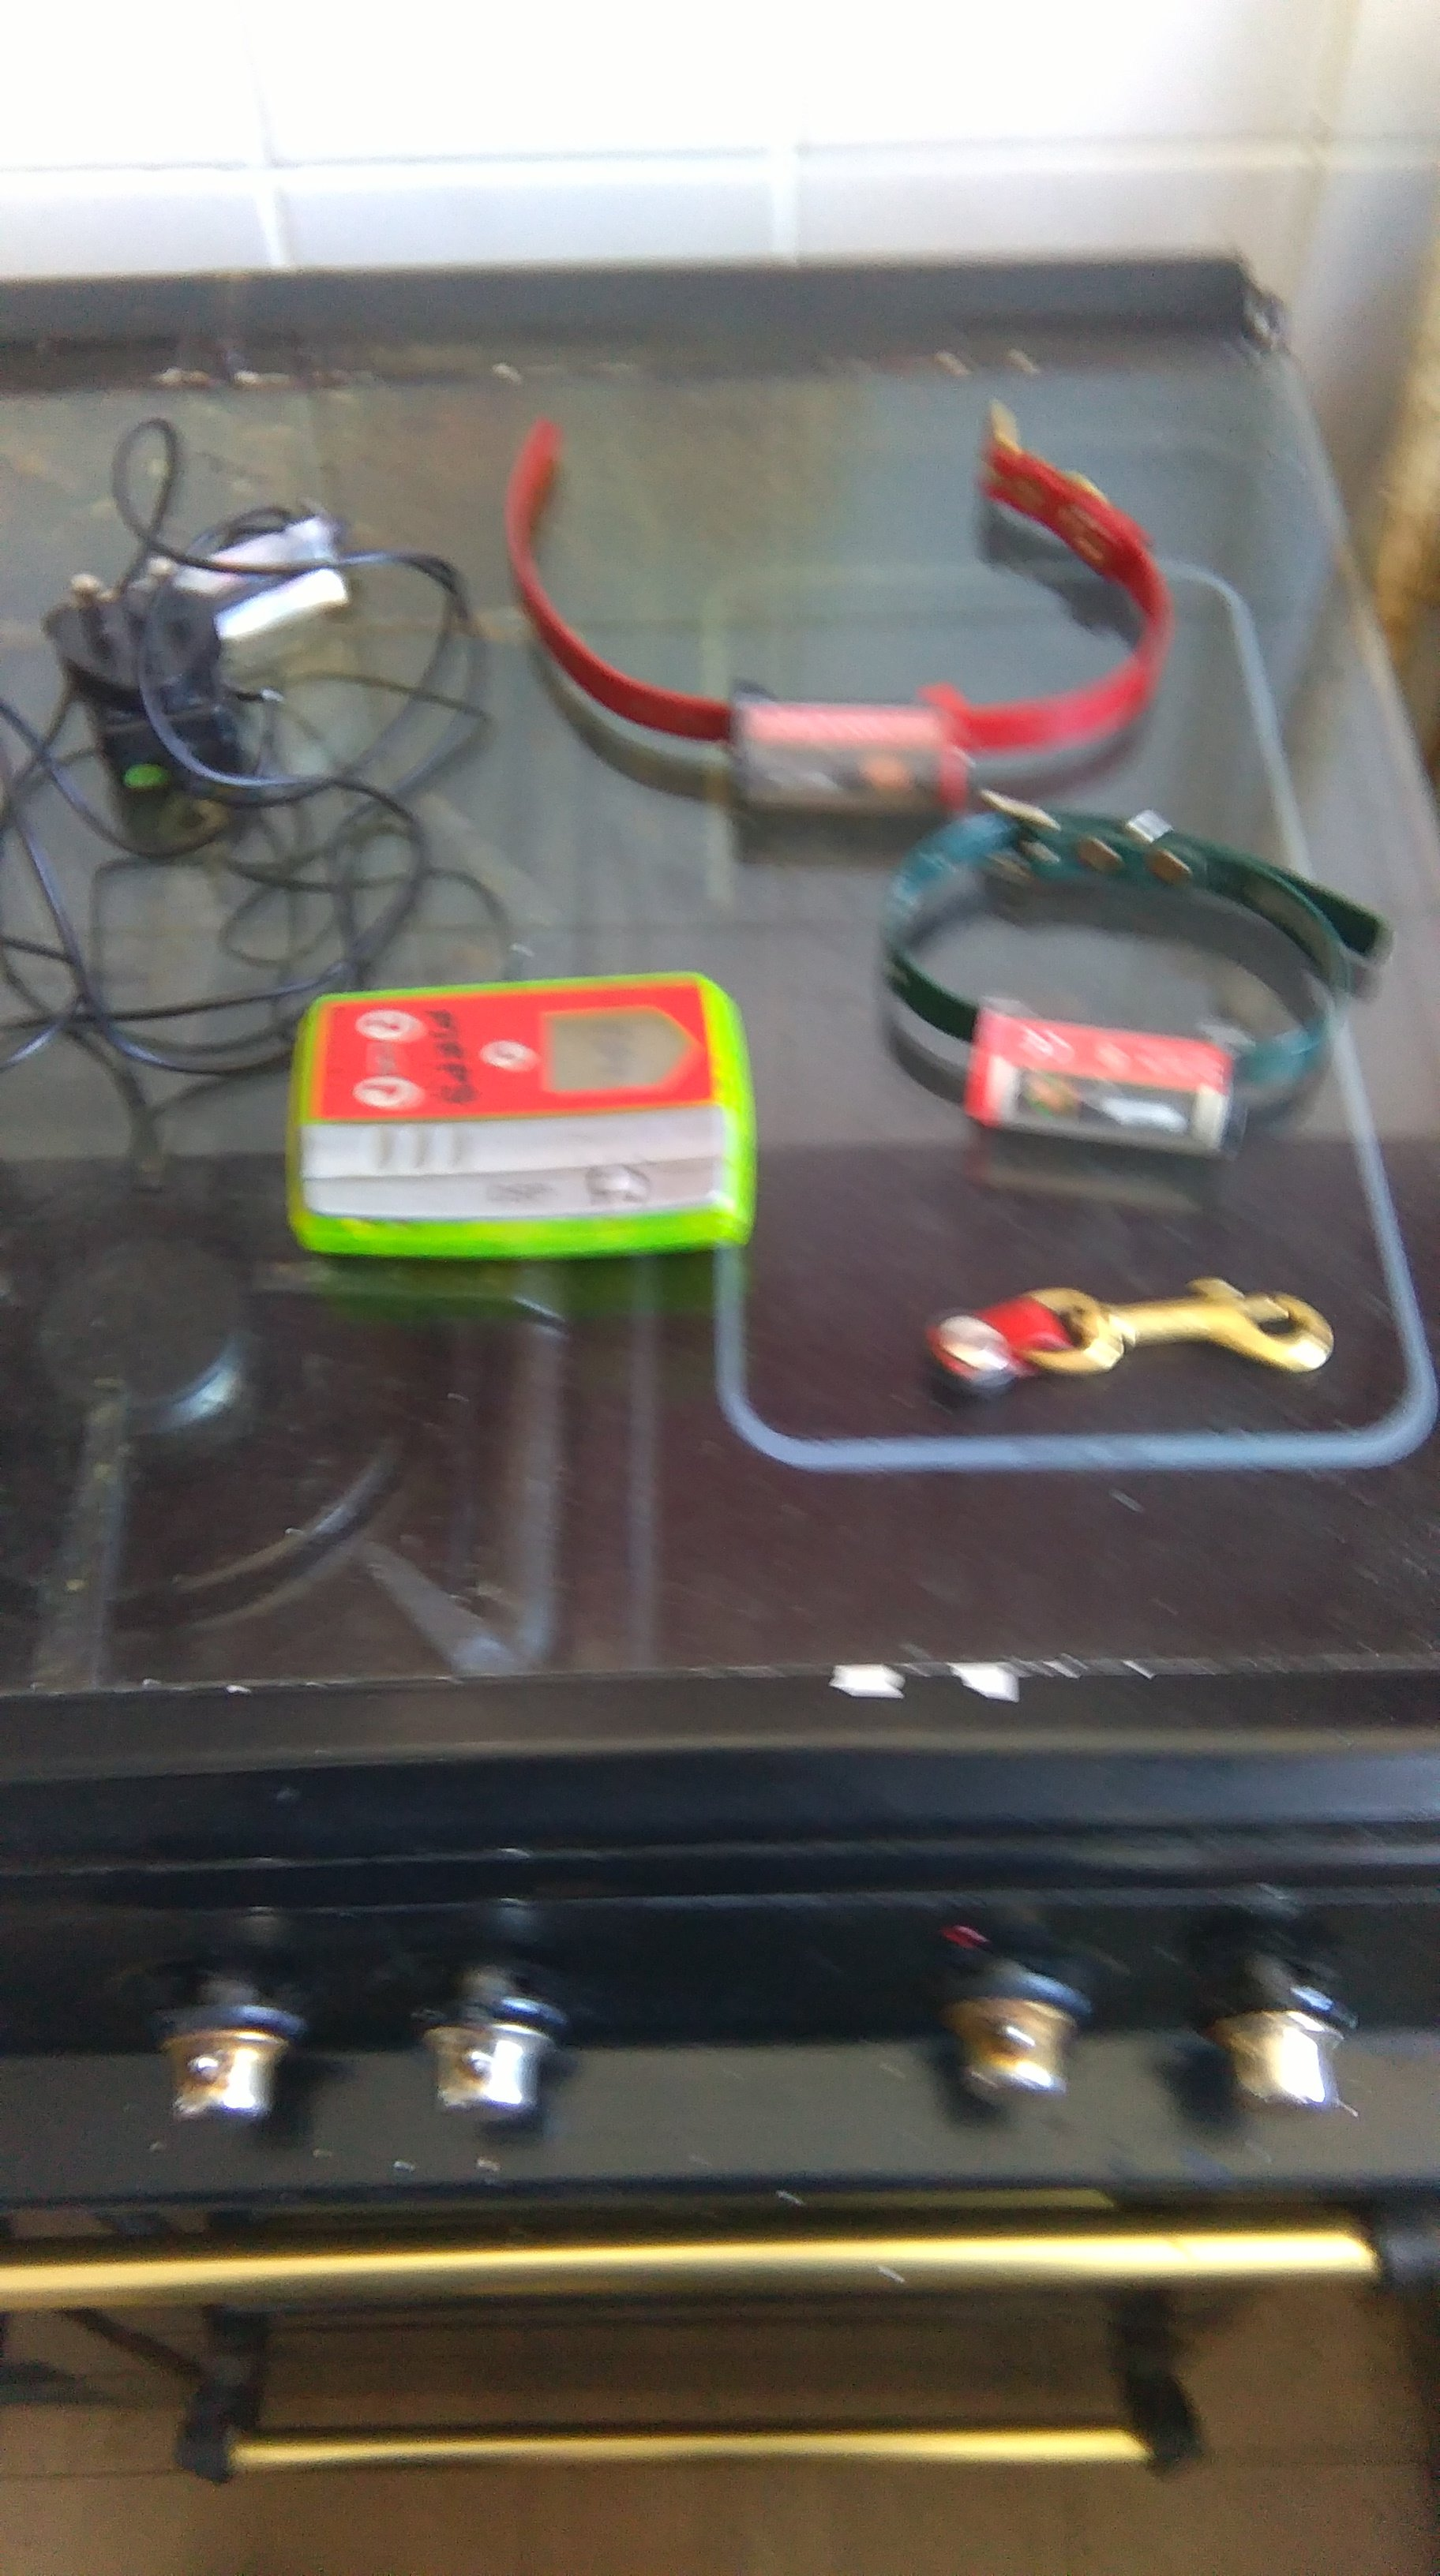 bellman and flint box 2 collars charger and keyring magnet